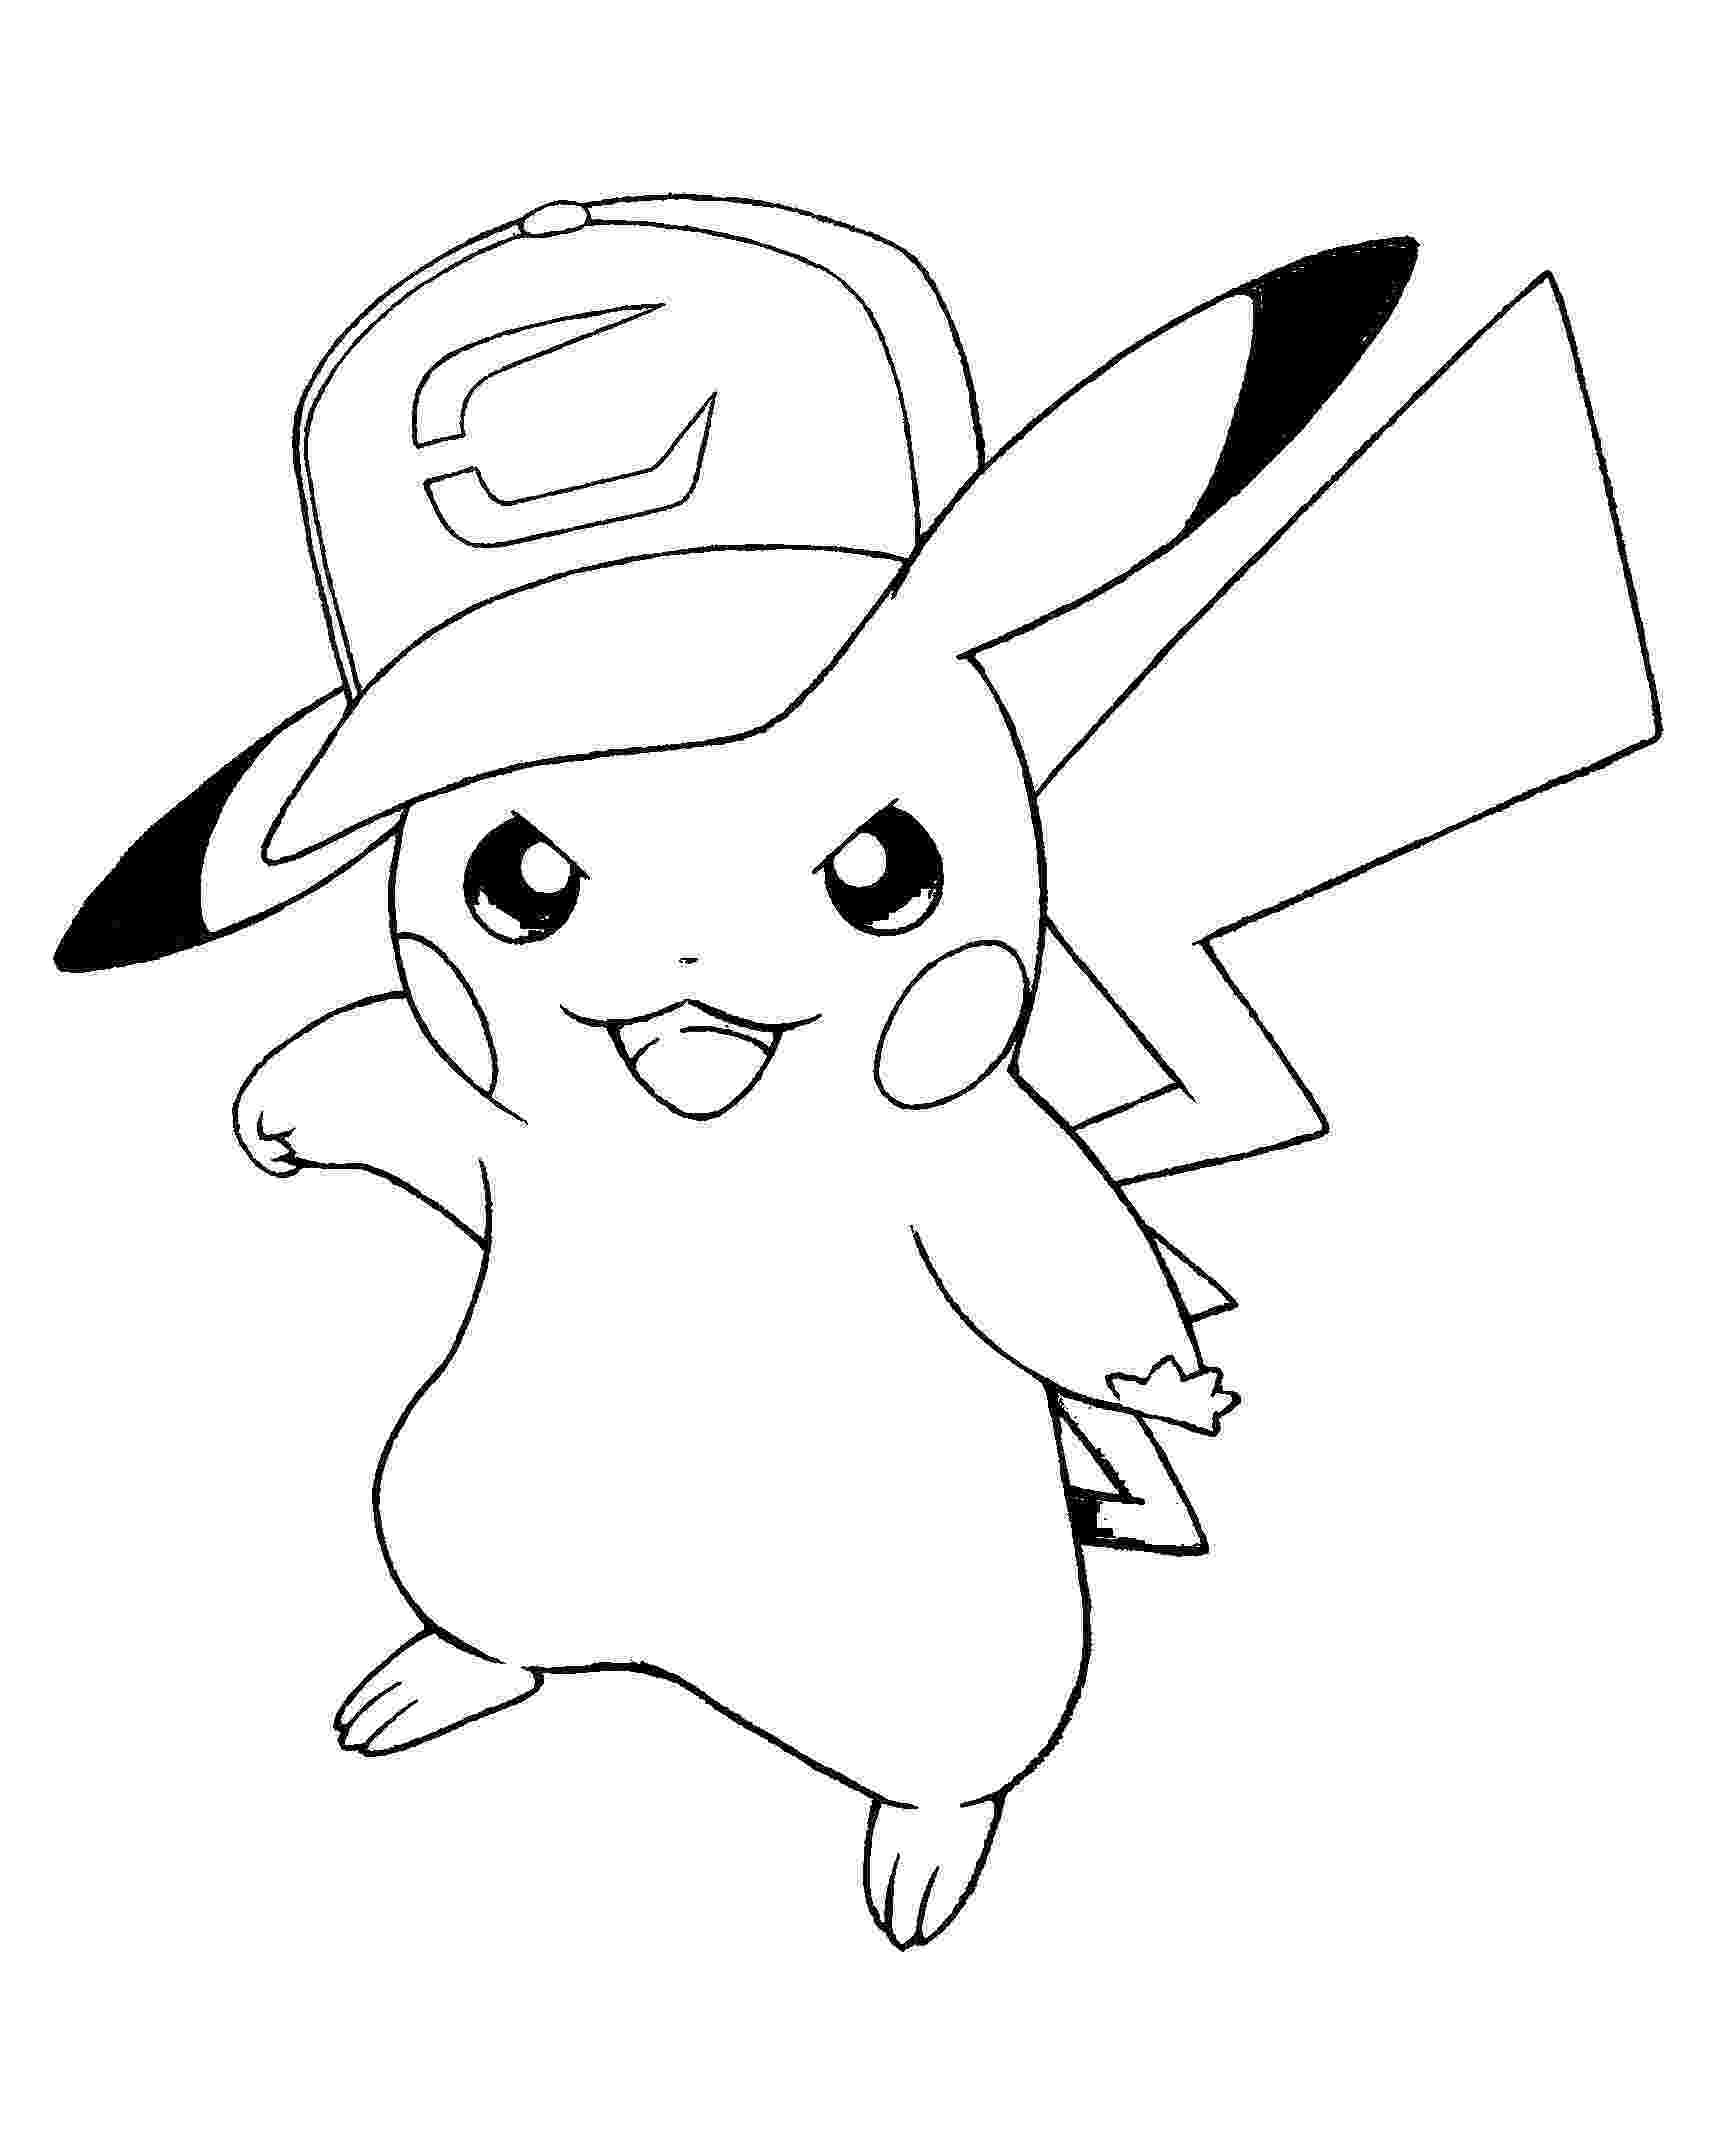 pikachu coloring sheet pokemon coloring pages quot pikachu sheet pikachu coloring